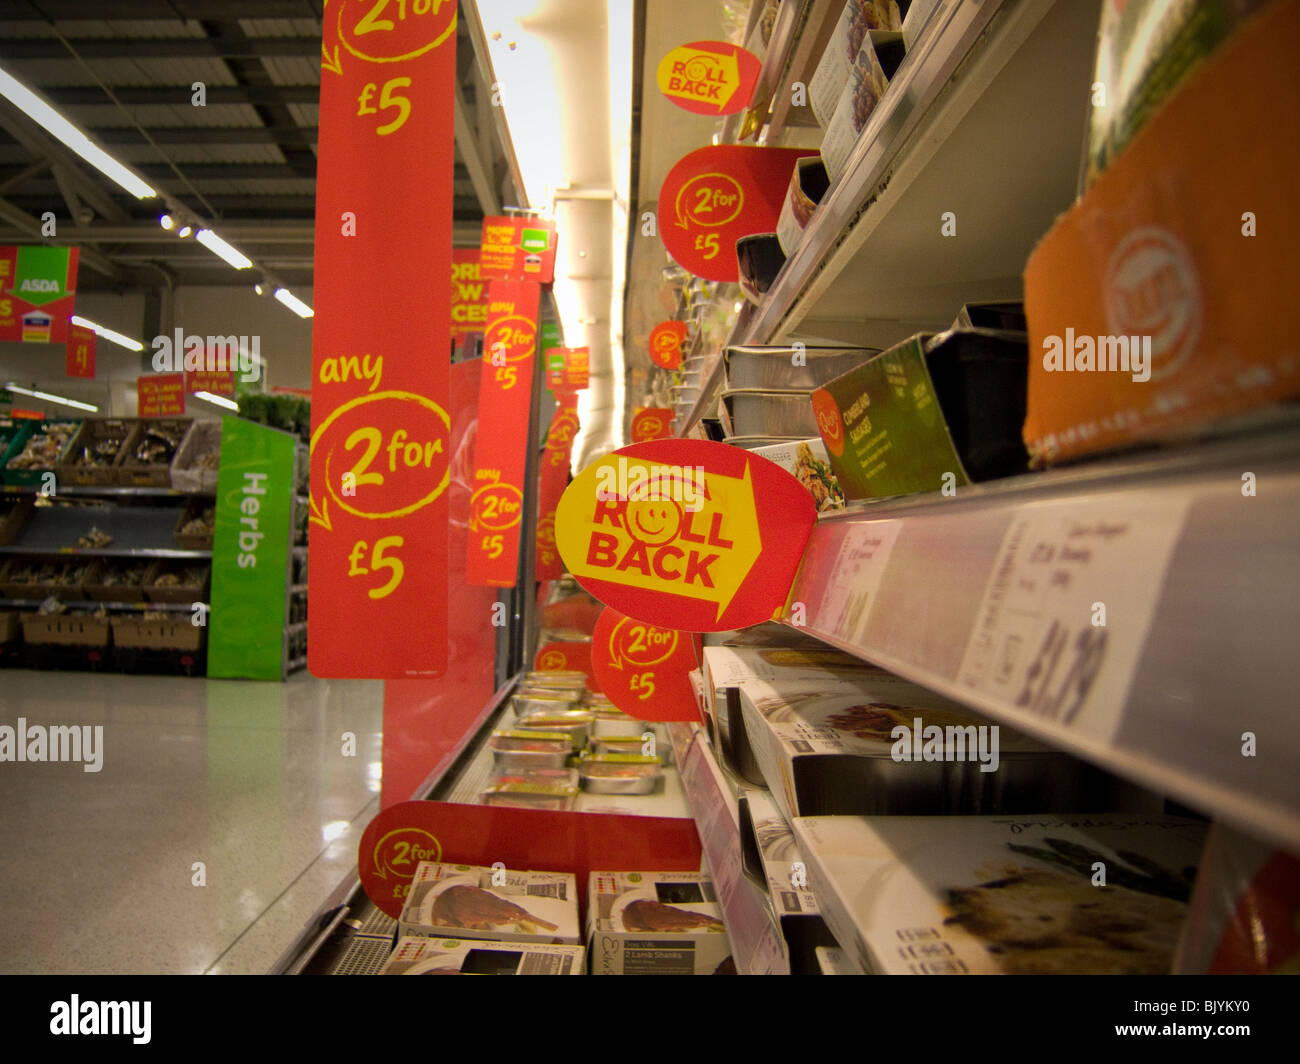 a roll back the prices sign in an asda store in the uk stock photo royalty free image. Black Bedroom Furniture Sets. Home Design Ideas